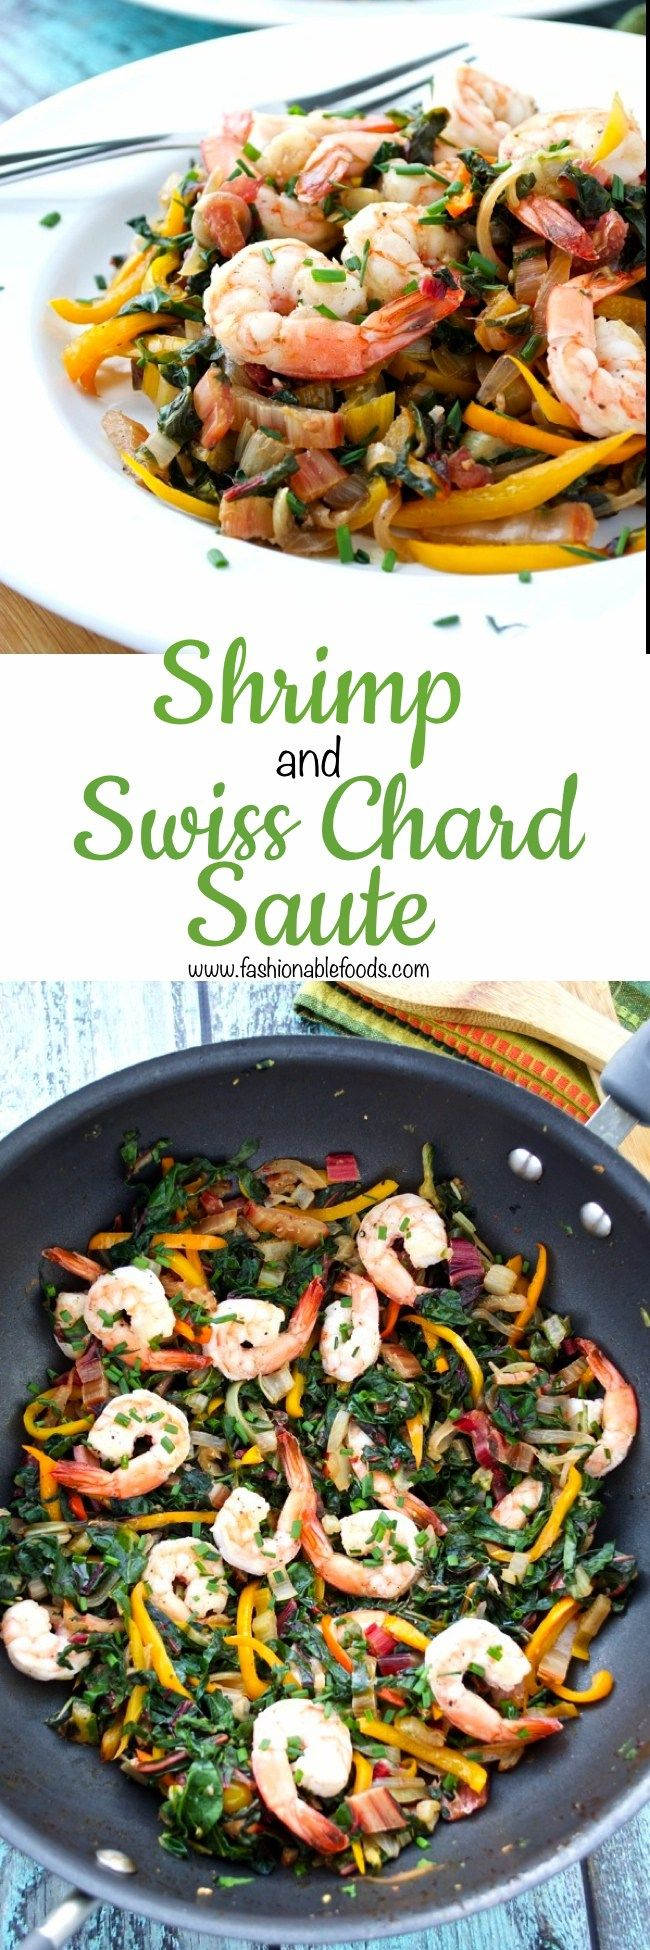 Stir-fries are a super fast and healthy way to get dinner on the table. Typically they are made using Asian flavors, but in this sauté I chose to go a different route. Swiss chard is tossed with flavorful ingredients and then topped with tender shrimp for a healthy and delicious weeknight meal.